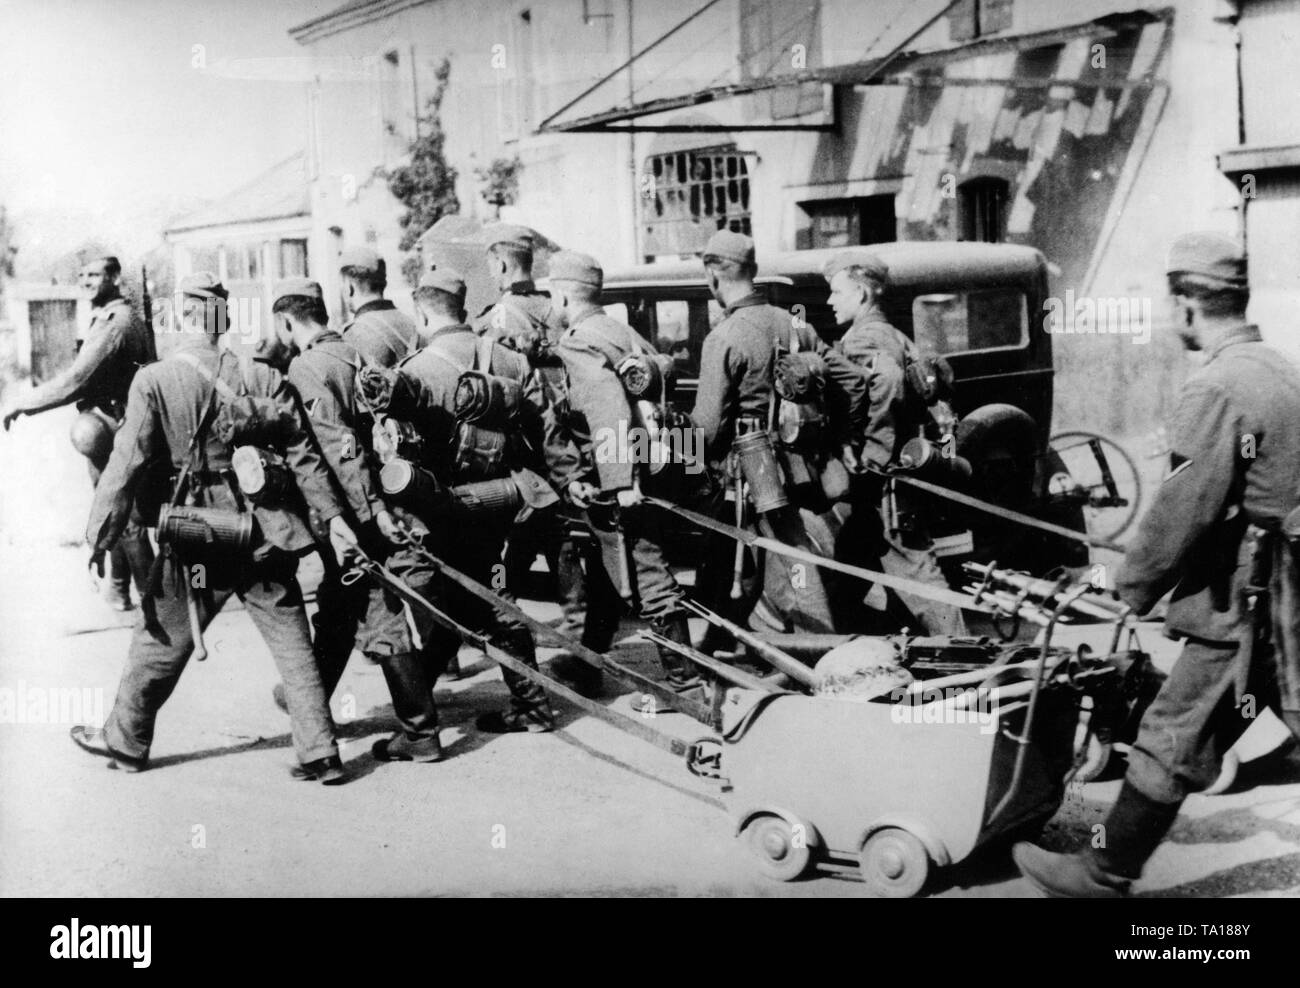 German infantry marching through a French village. They laid their rifles in confiscated strollers. Stock Photo